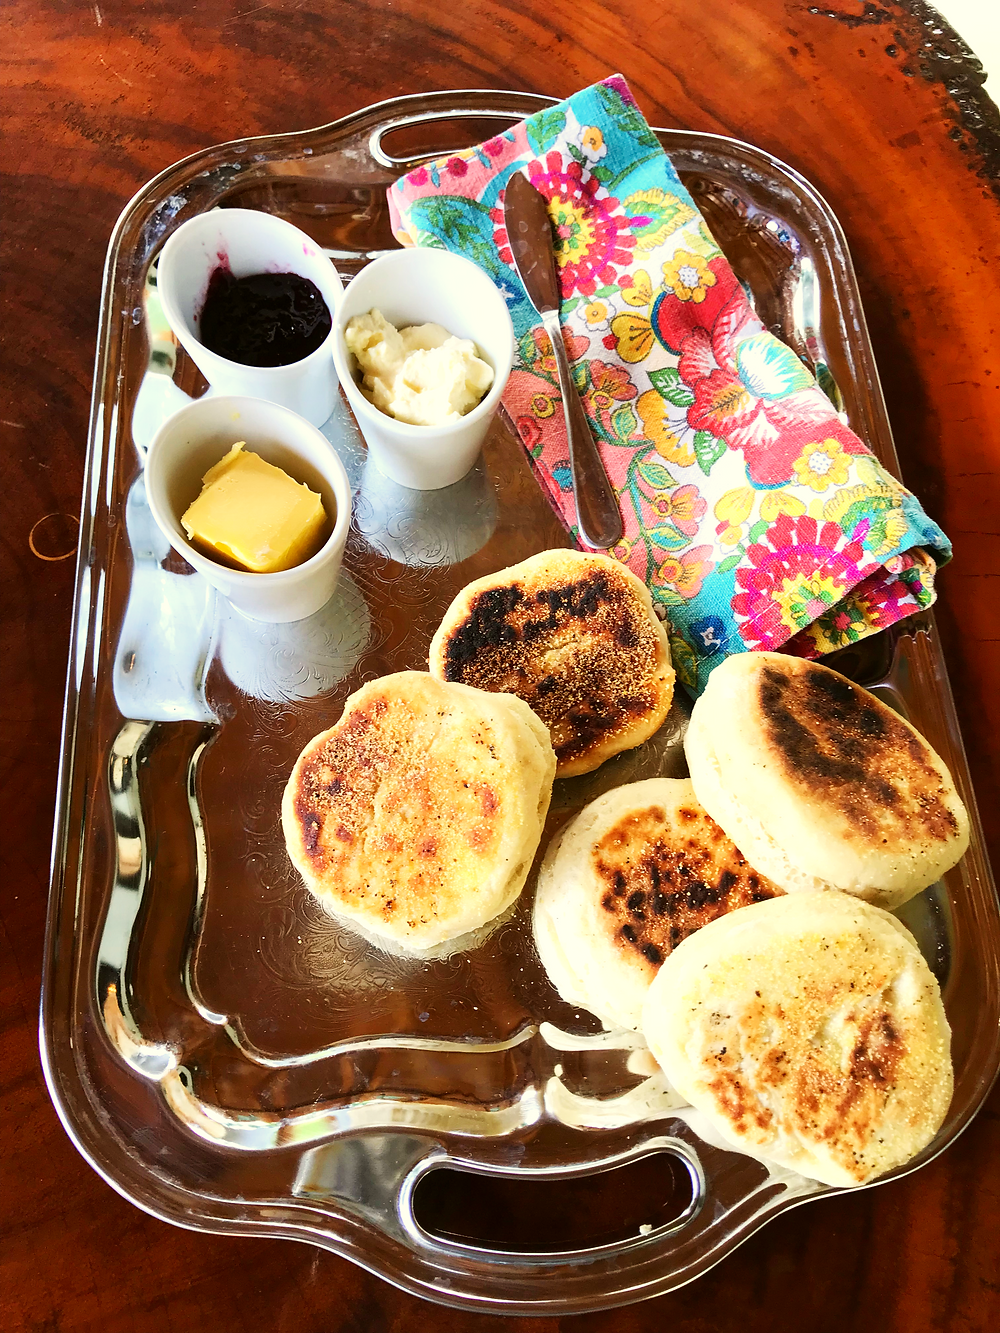 Sour Dough English Muffins